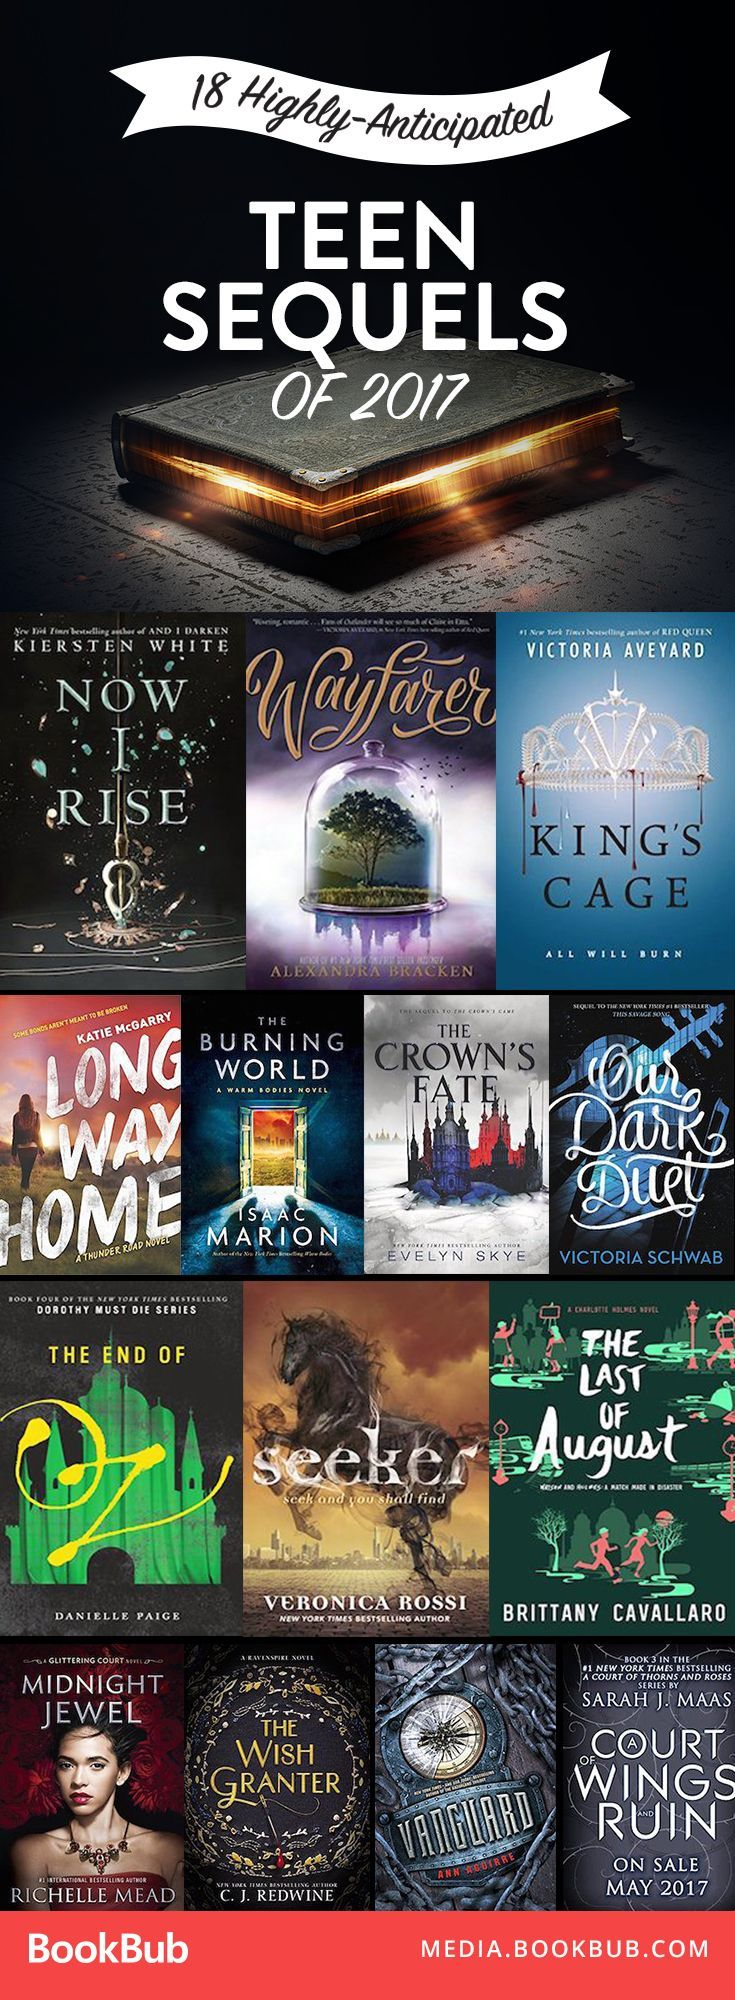 18 Highly-Anticipated Teen Sequels Coming in 2017   Library